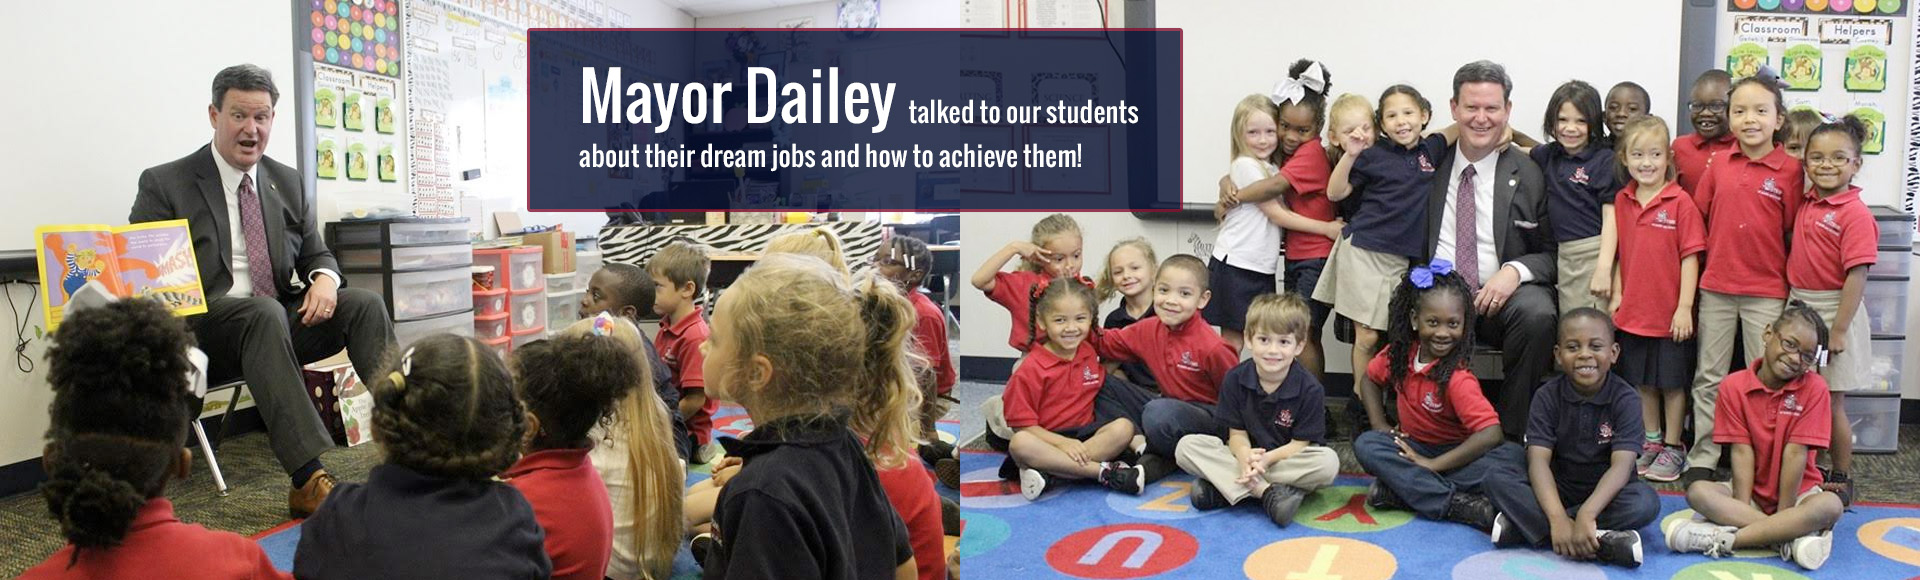 mayor-dailey